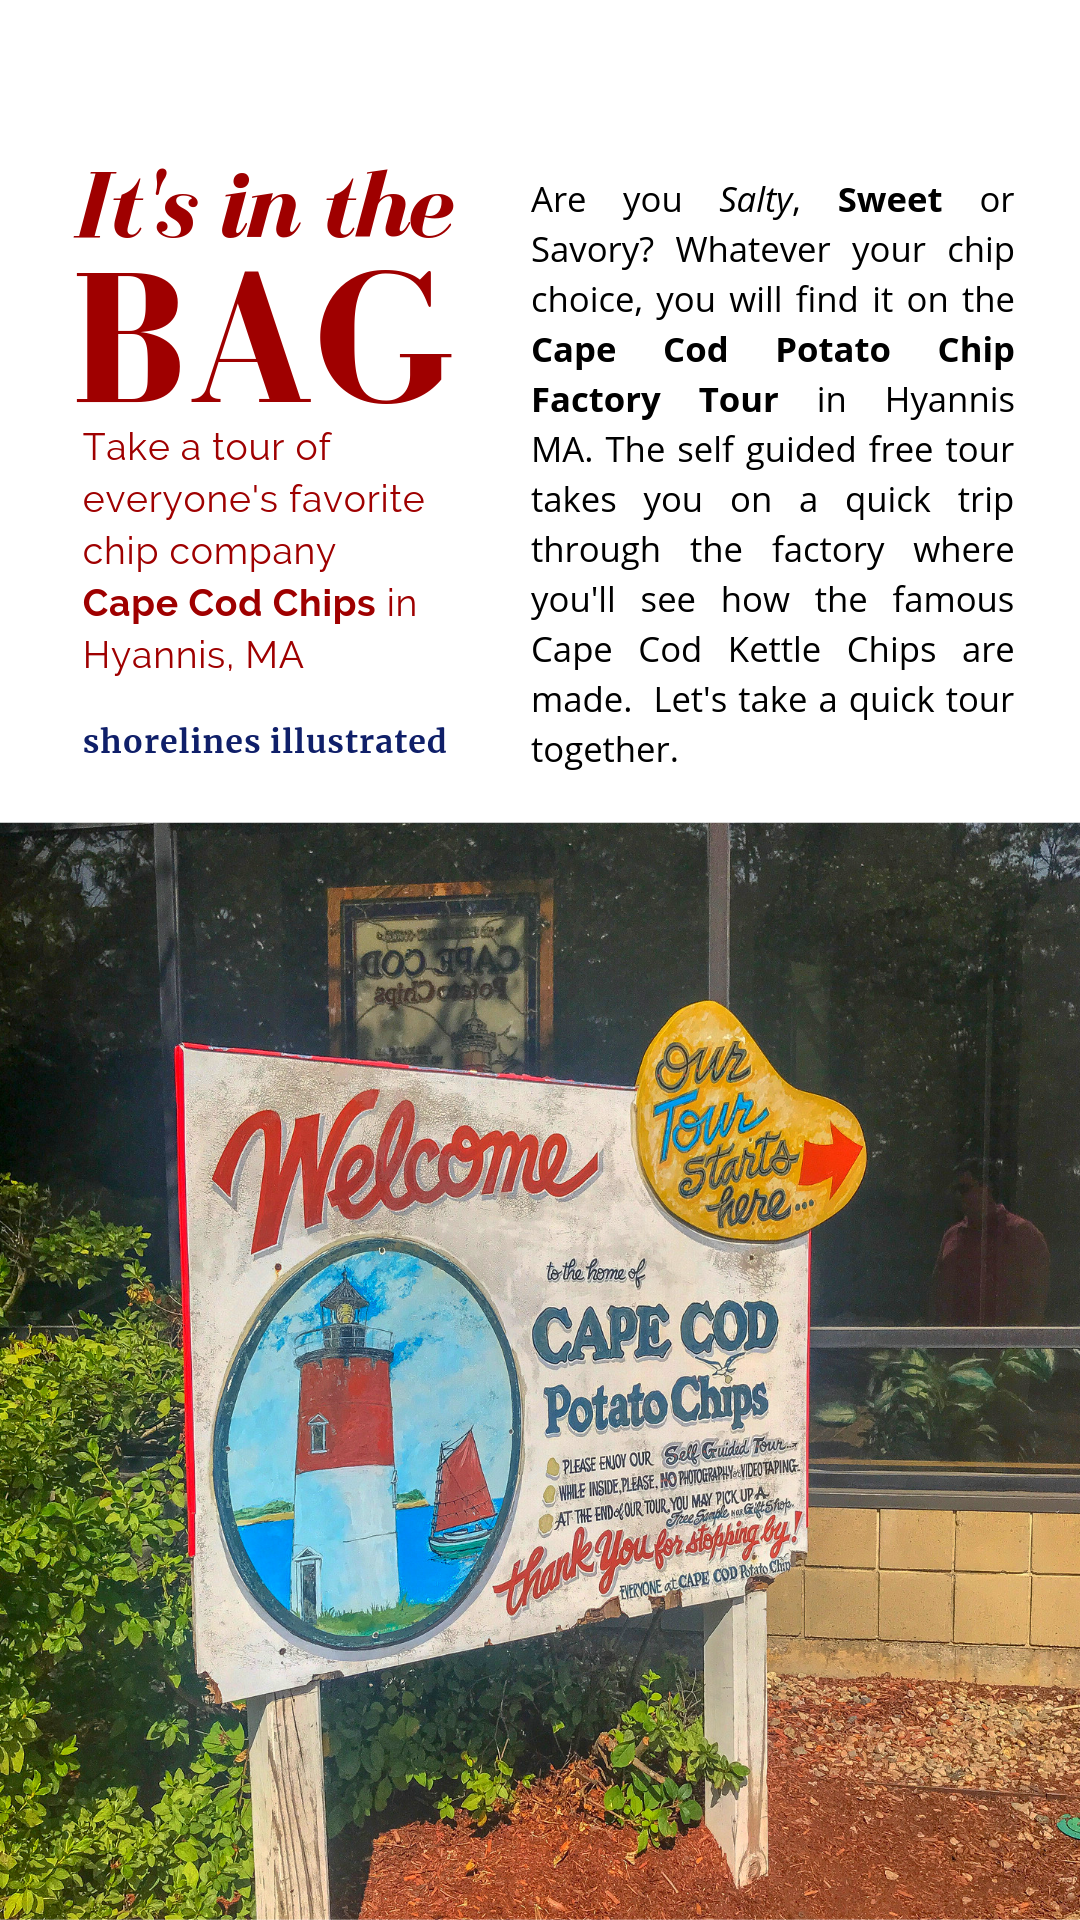 Cape_Cod_Factory_Tour_Story_2